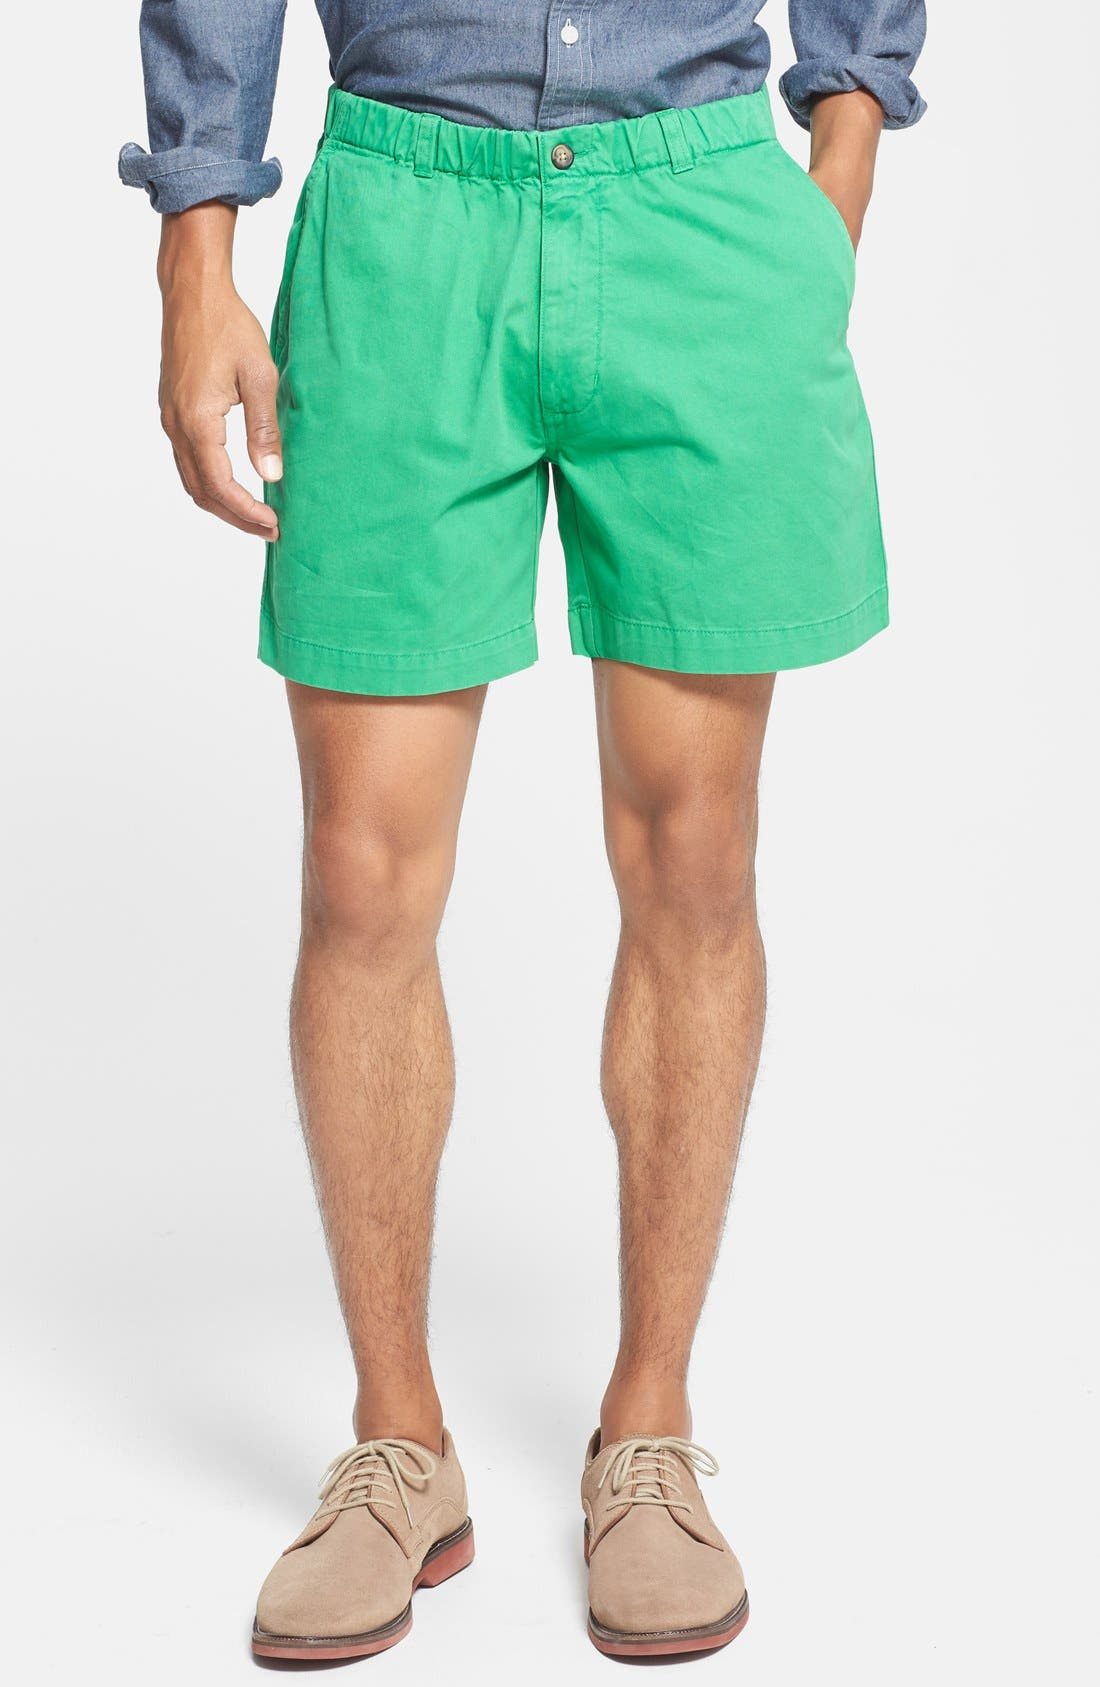 'Snappers' Vintage Washed Elastic Waistband Shorts,                         Main,                         color, Pine